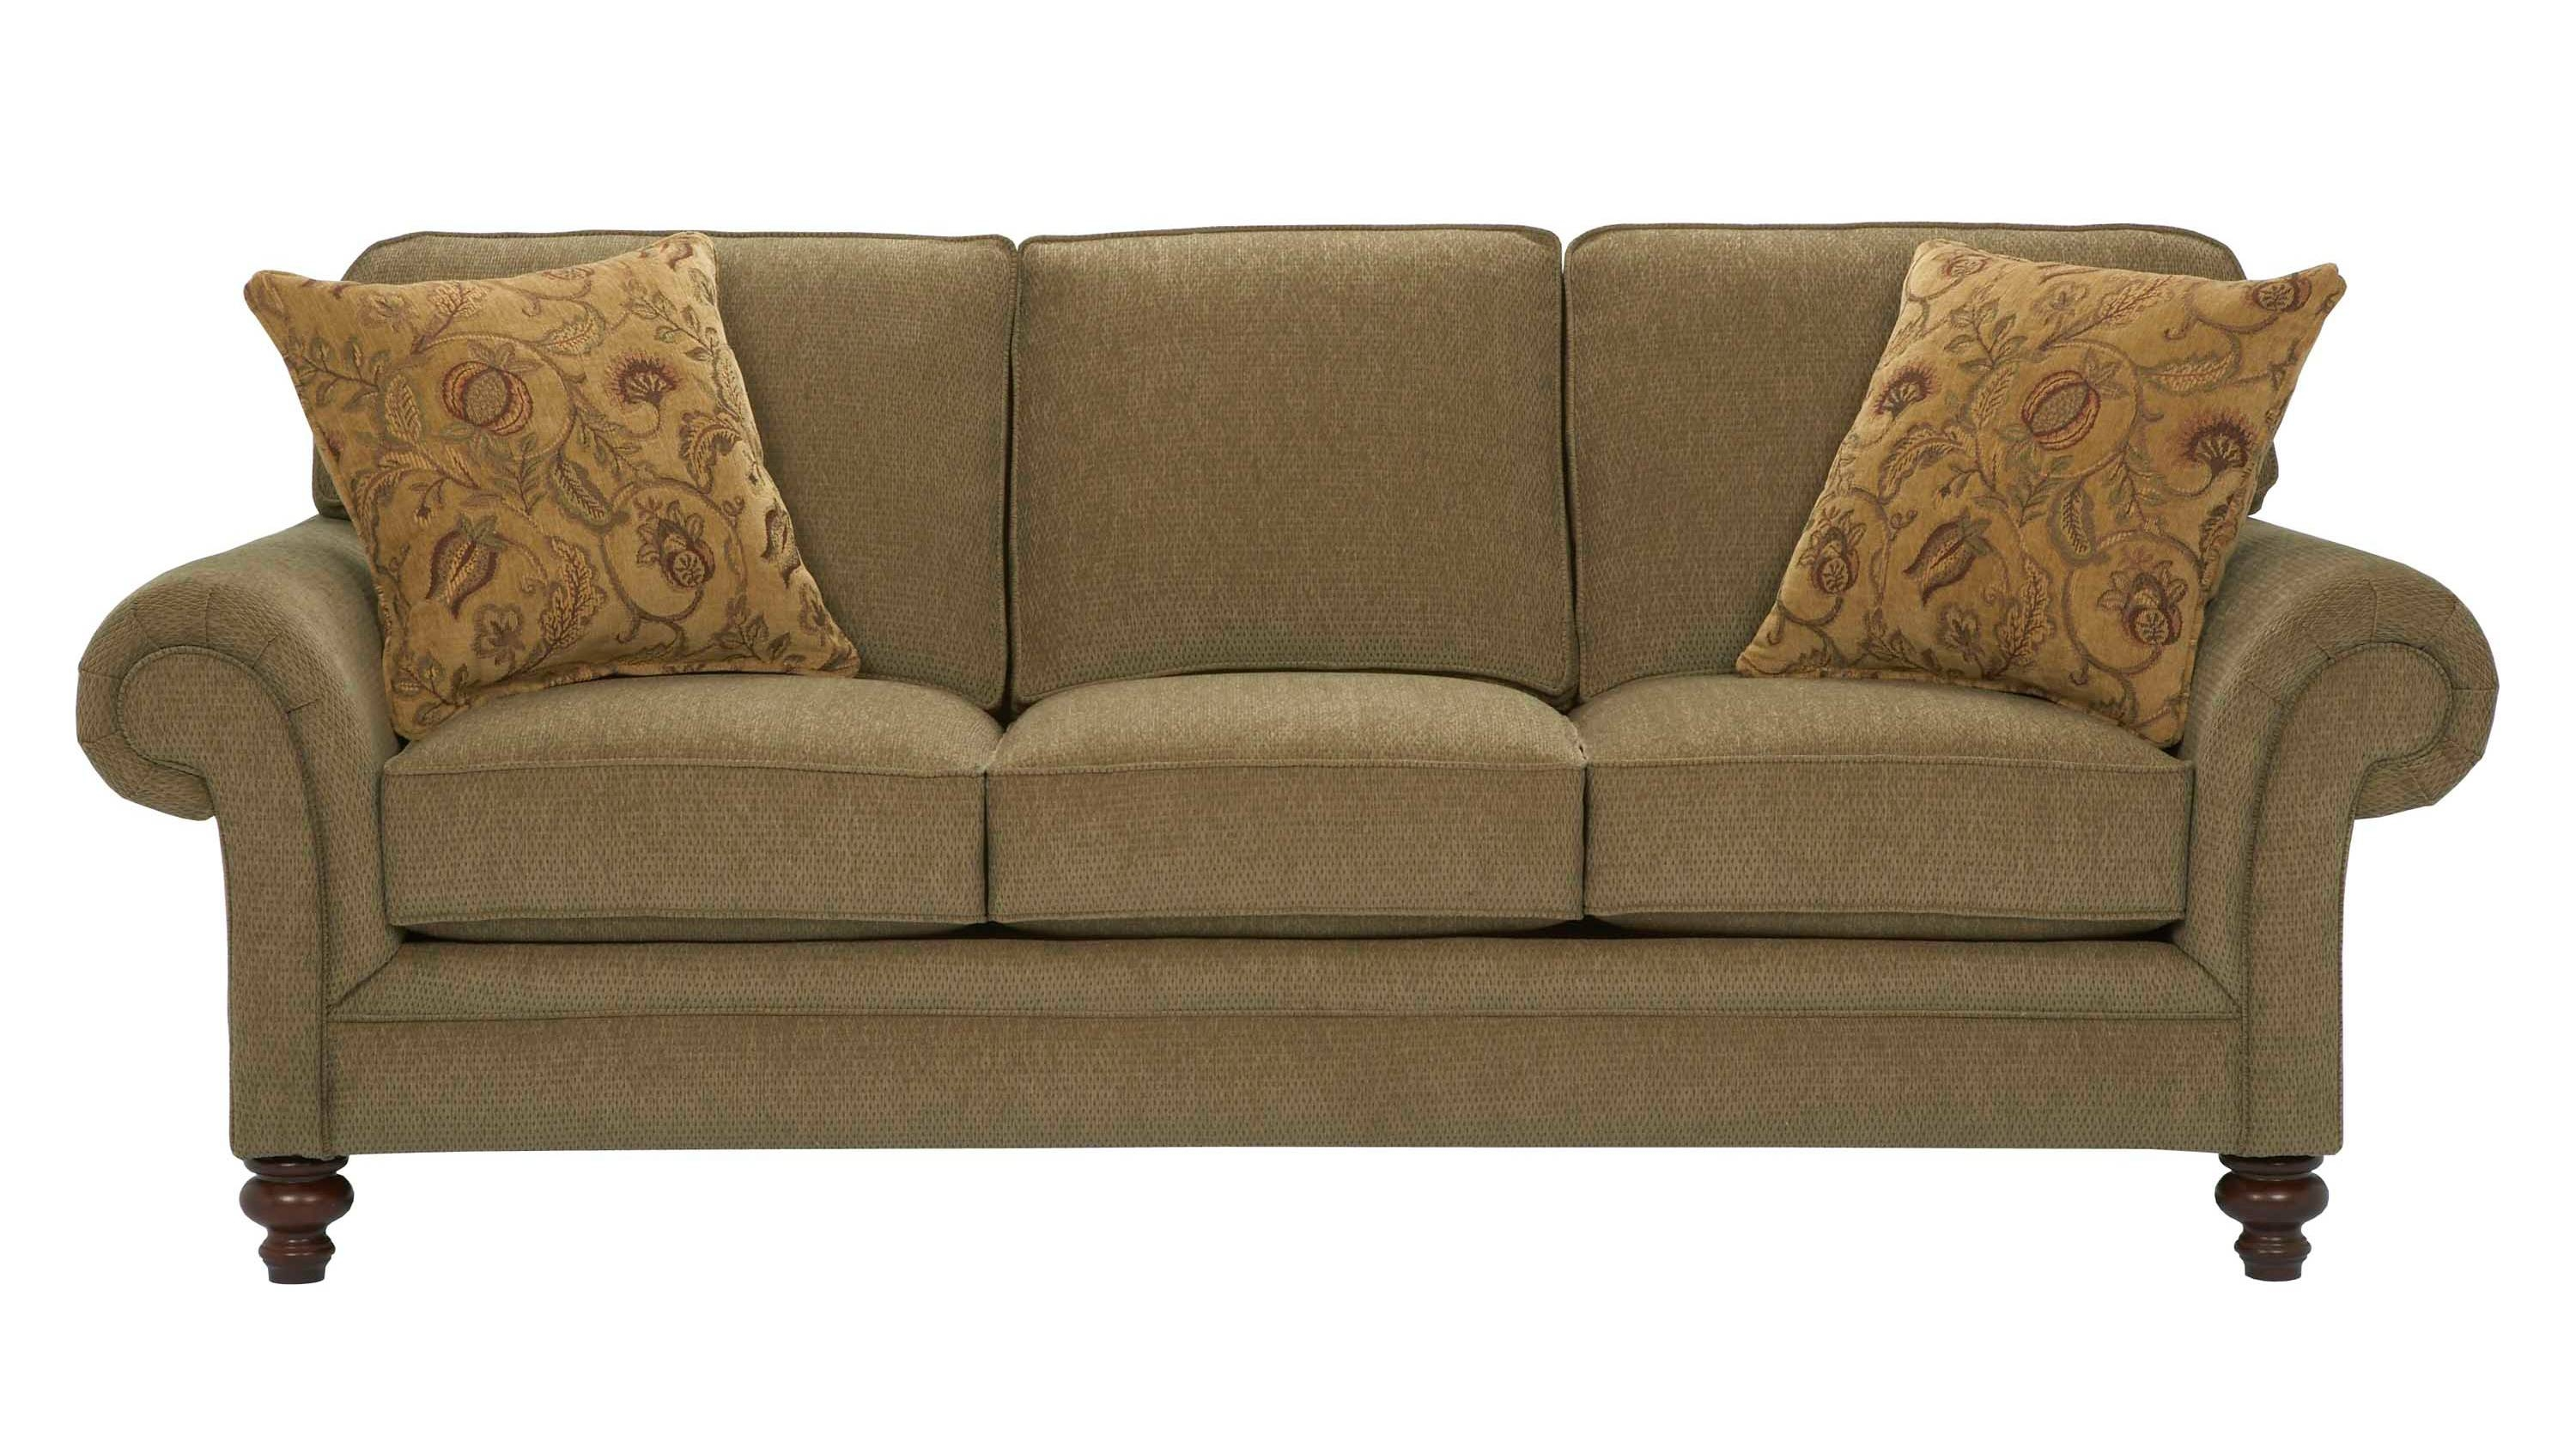 Broyhill Larissa Sofa 6112-3Q for Broyhill Sofas (Image 8 of 15)